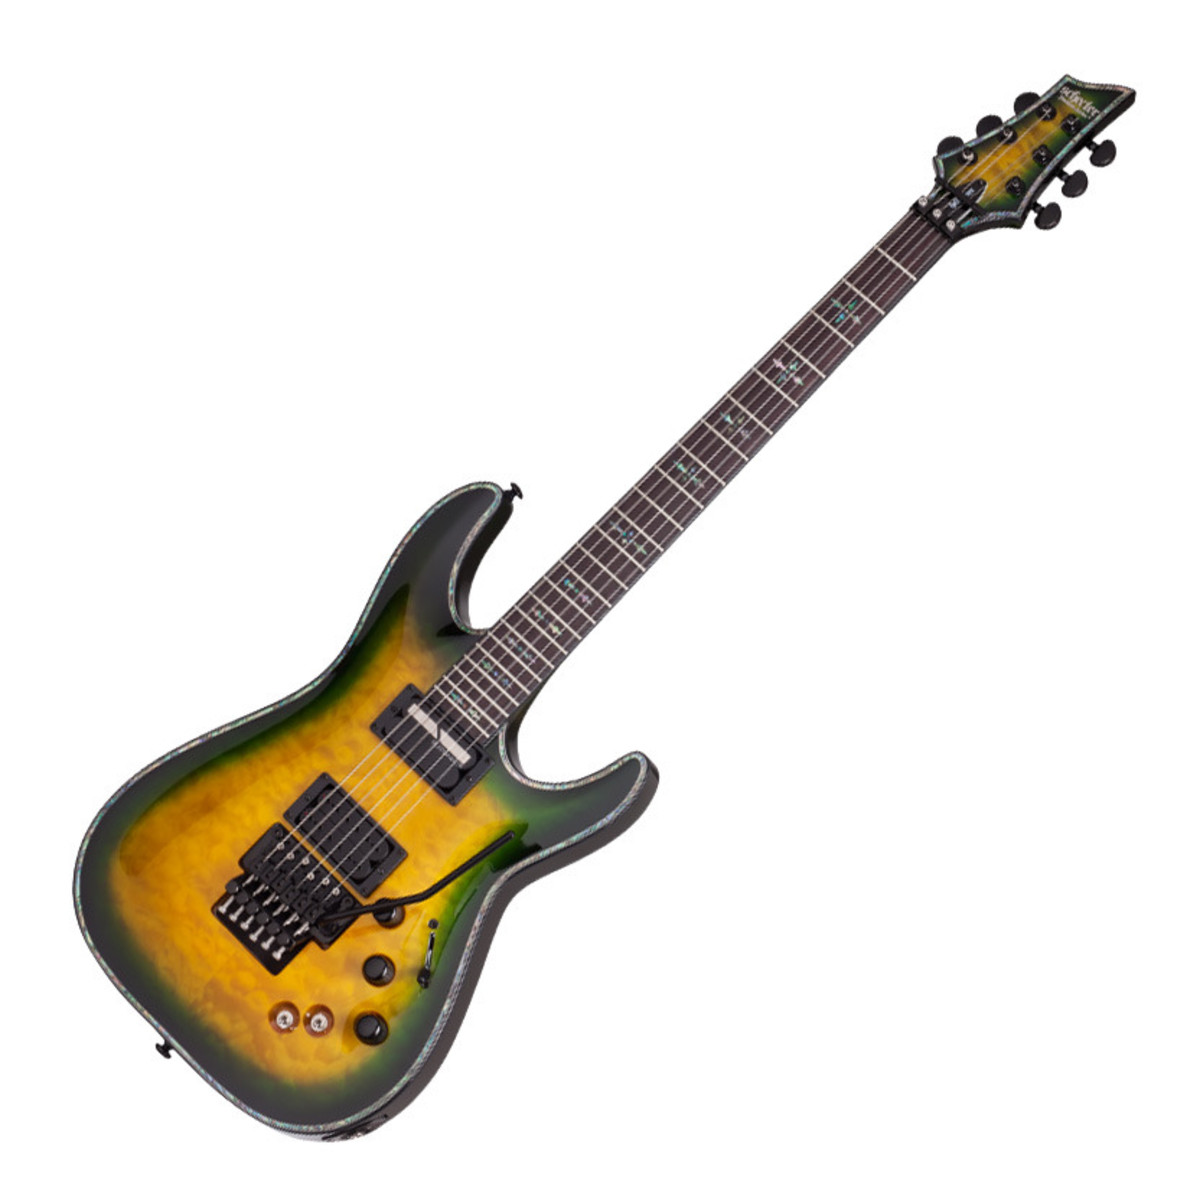 schecter hellraiser c 1 fr s passive electric guitar dragon burst at. Black Bedroom Furniture Sets. Home Design Ideas